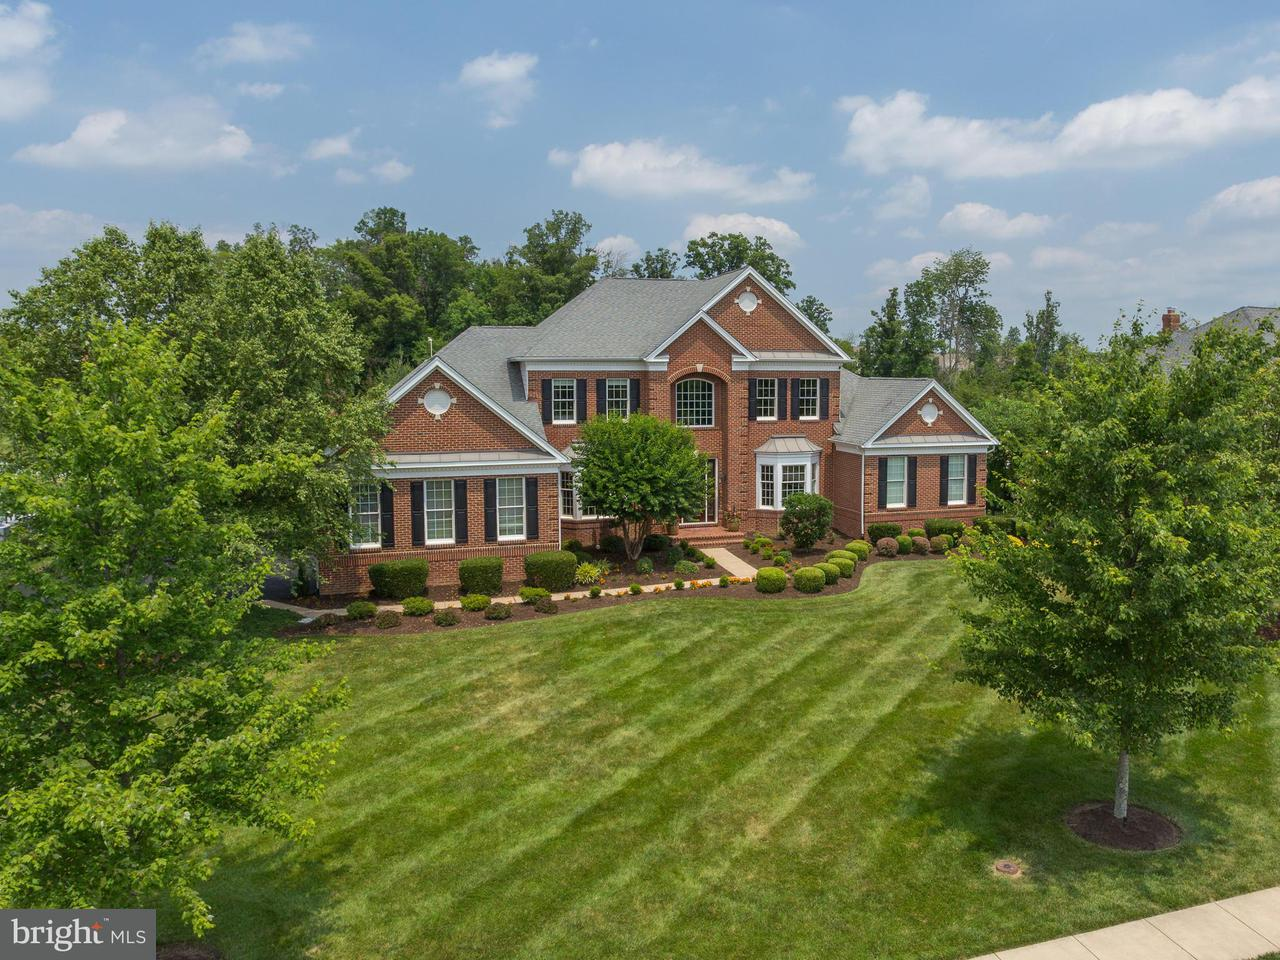 Single Family Home for Sale at 43164 Tall Pines Court 43164 Tall Pines Court Ashburn, Virginia 20147 United States